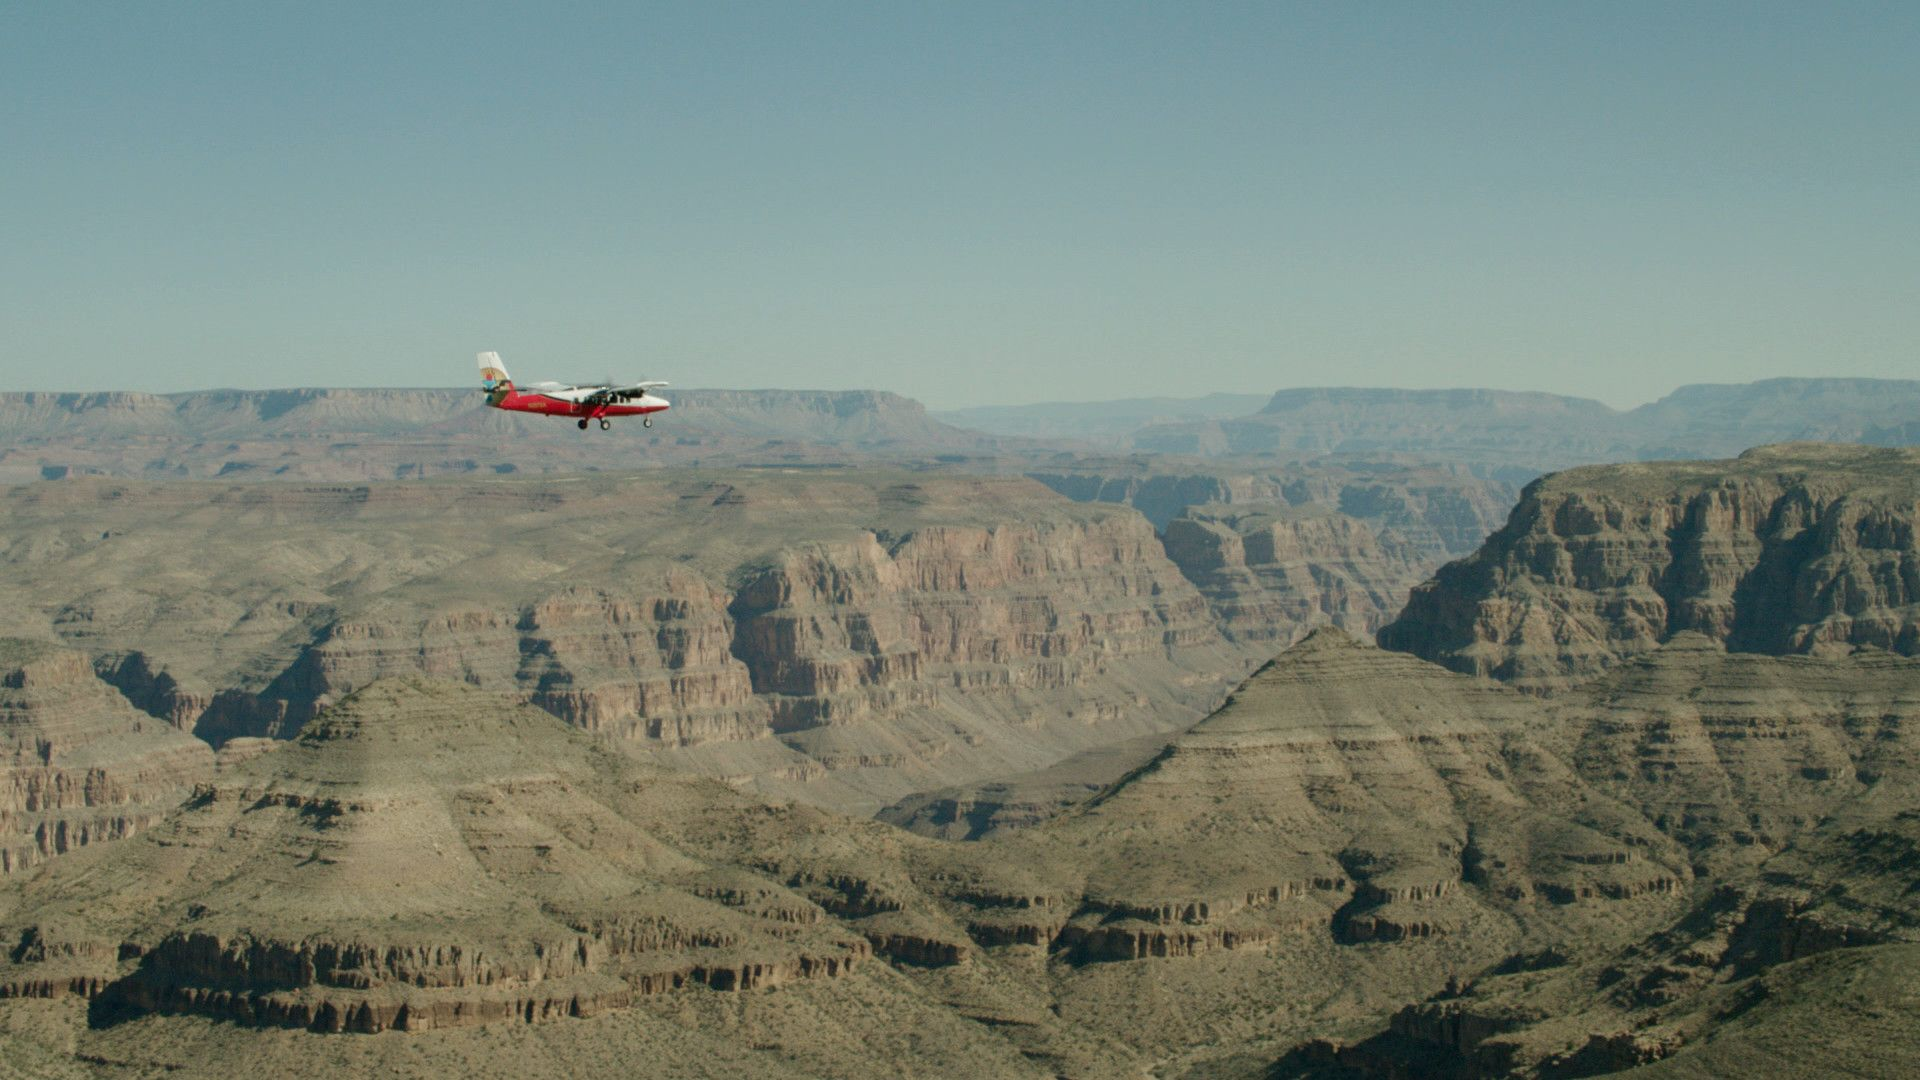 Grand Canyon air tour in progress aboard a twin-otter aircraft